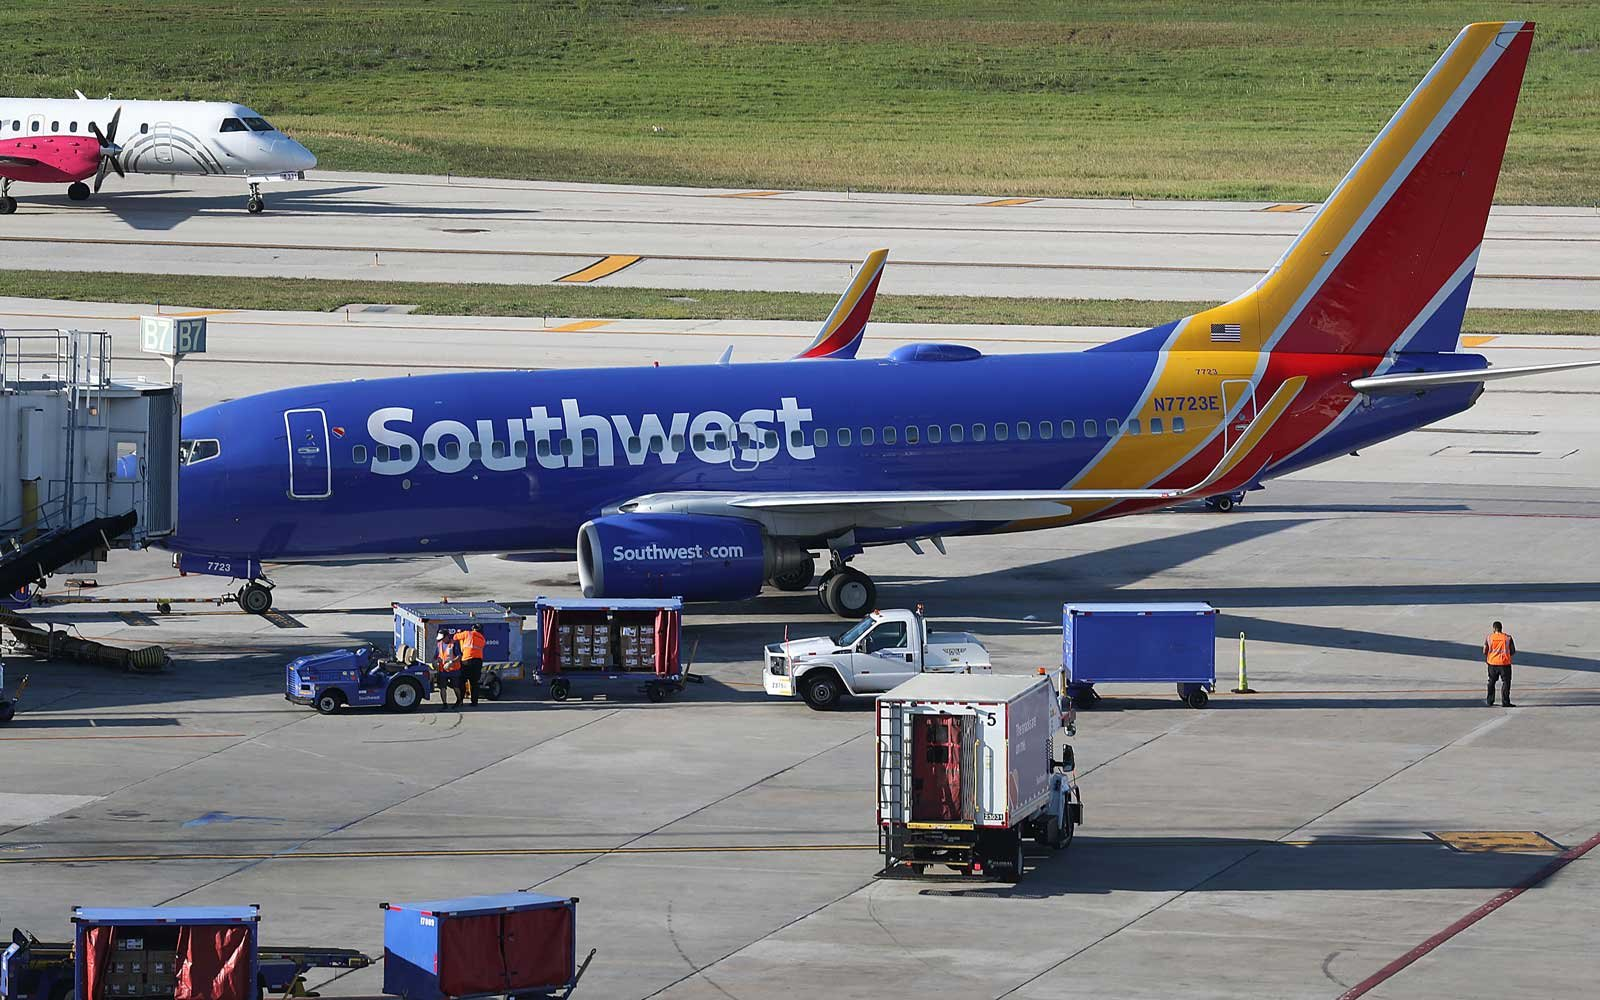 Southwest Airlines continues to have issues with mechanics